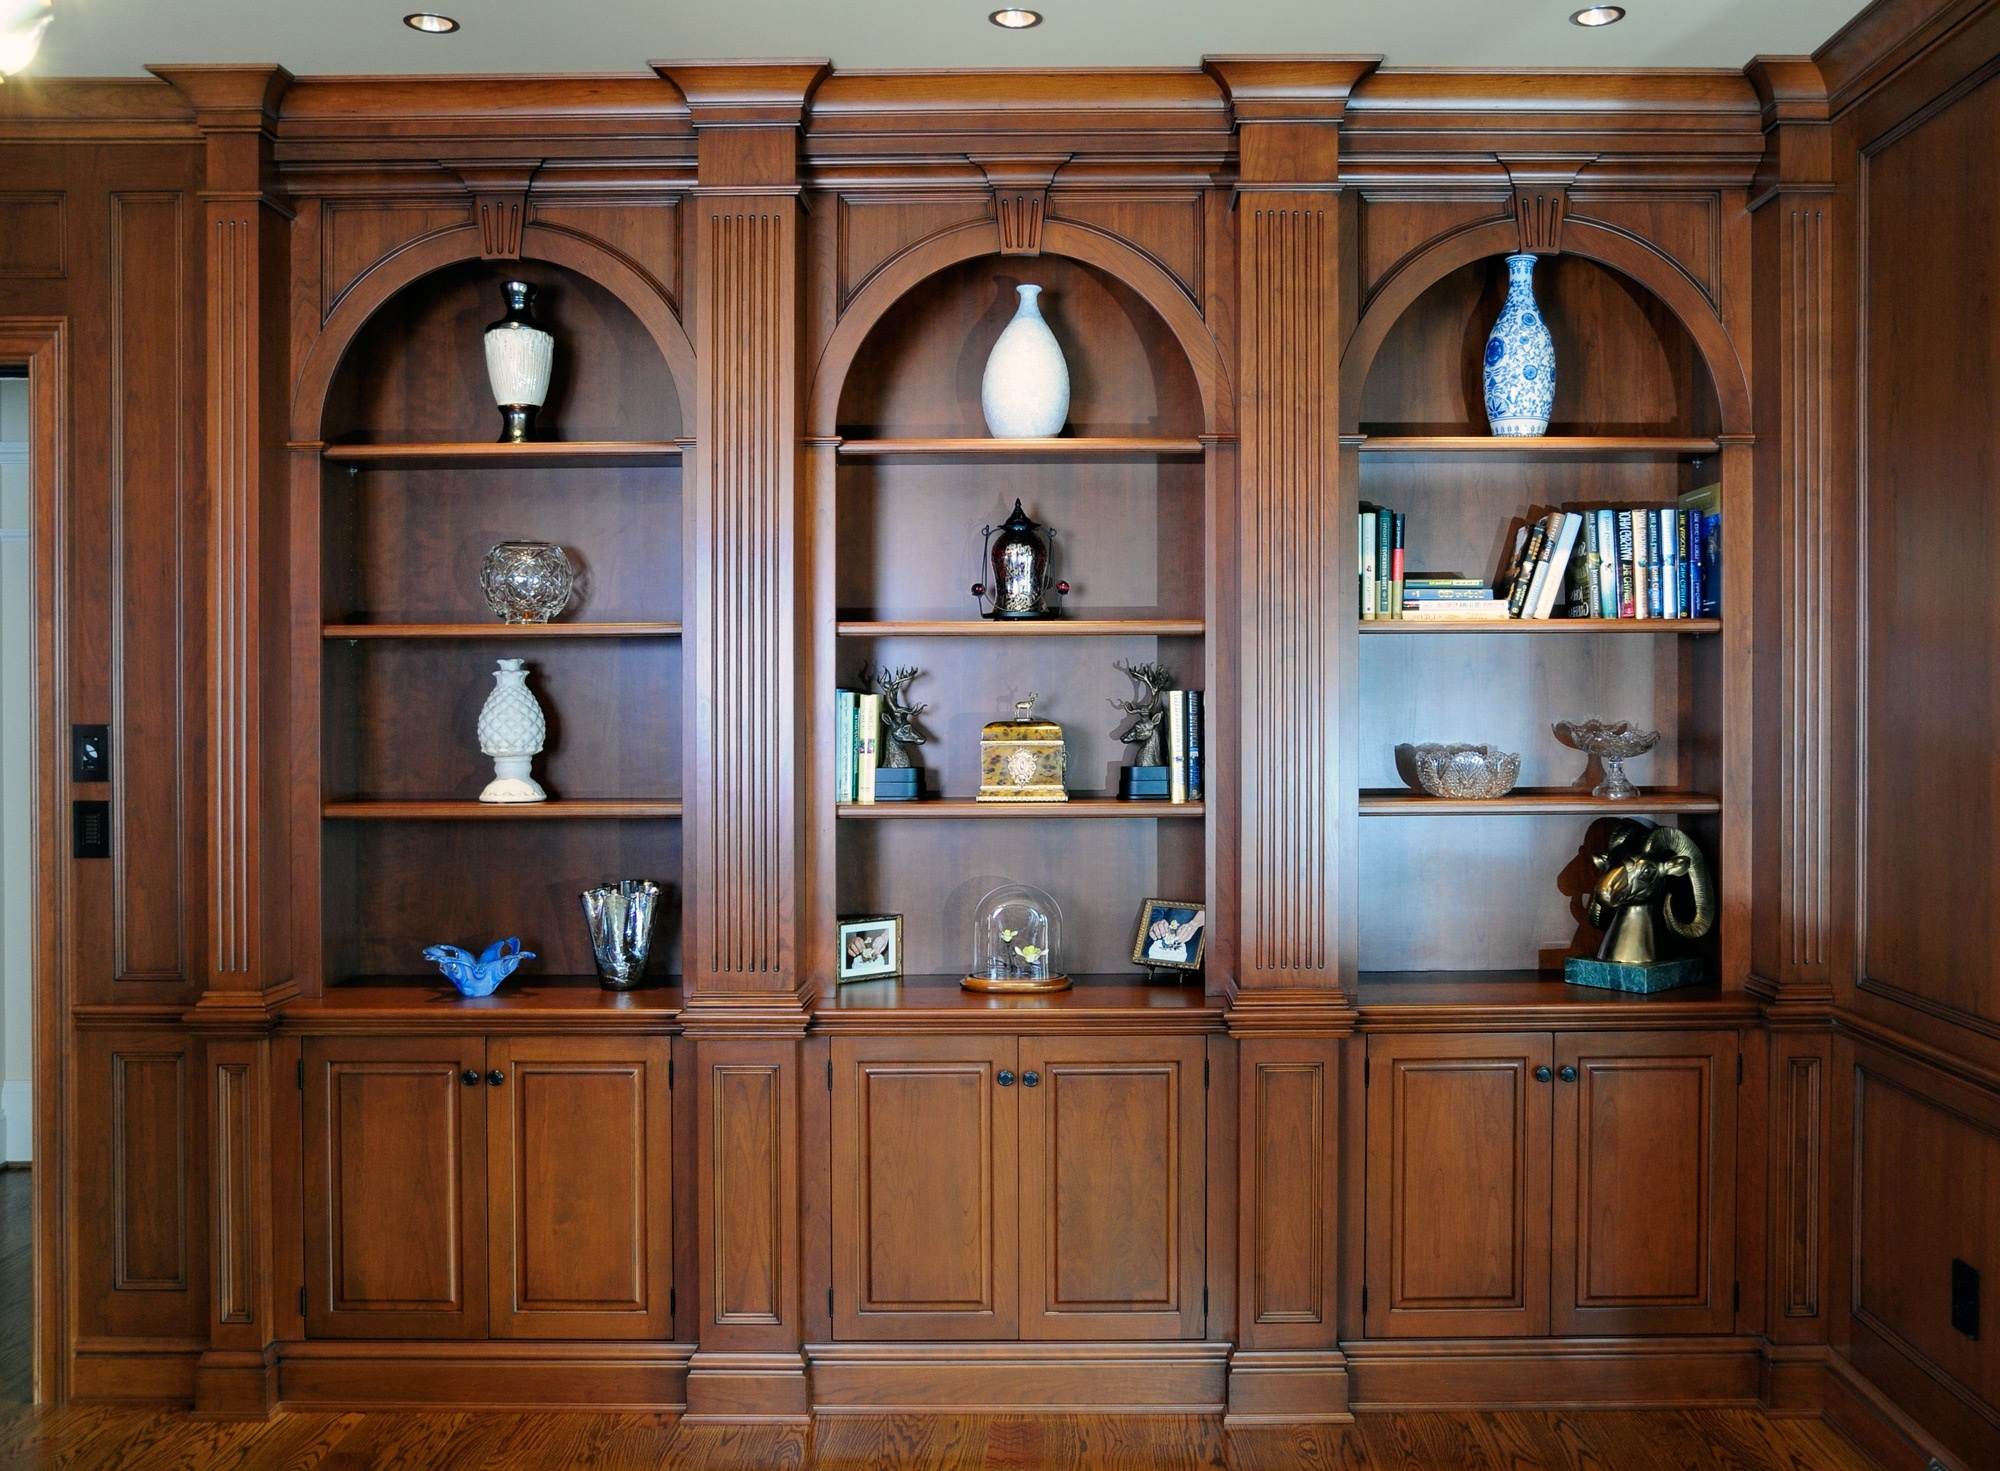 Wood Bookcases Intended For Most Popular Elegant Arched Cherry Wood Bookcases – Custom Cabinetryken Leech (View 9 of 15)